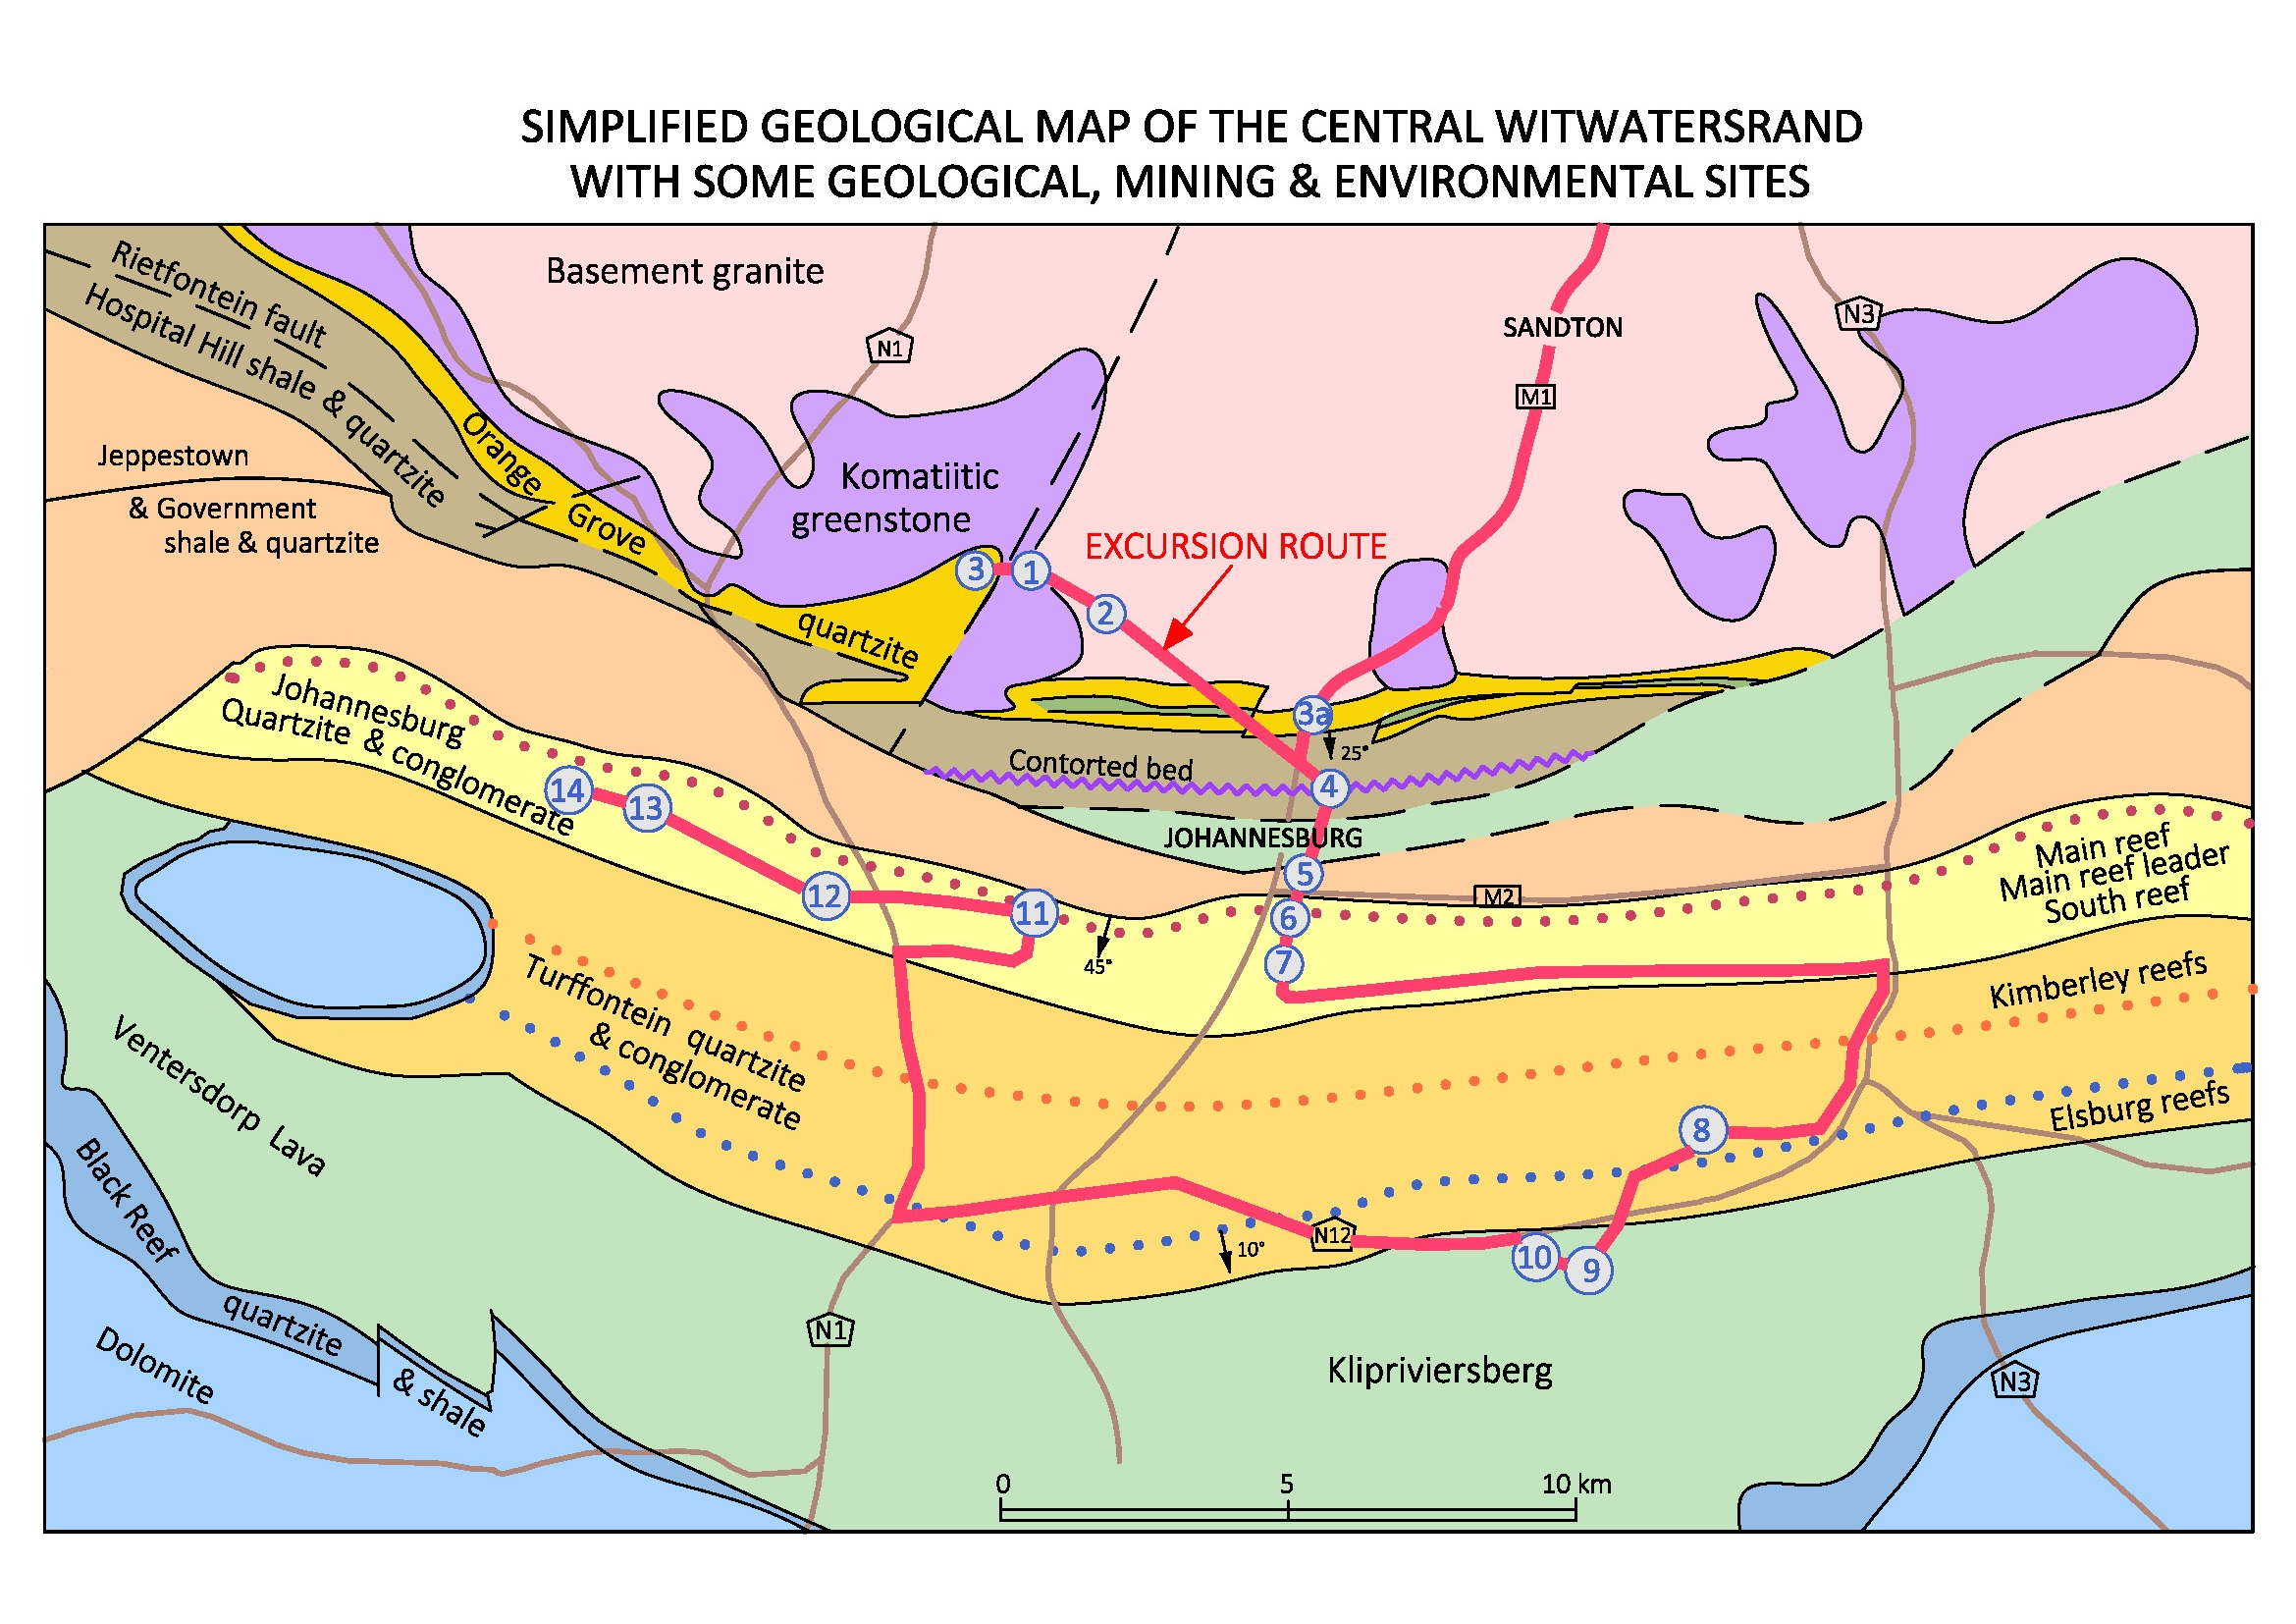 ODPre2 Witwatersrand geology historical mining and environment